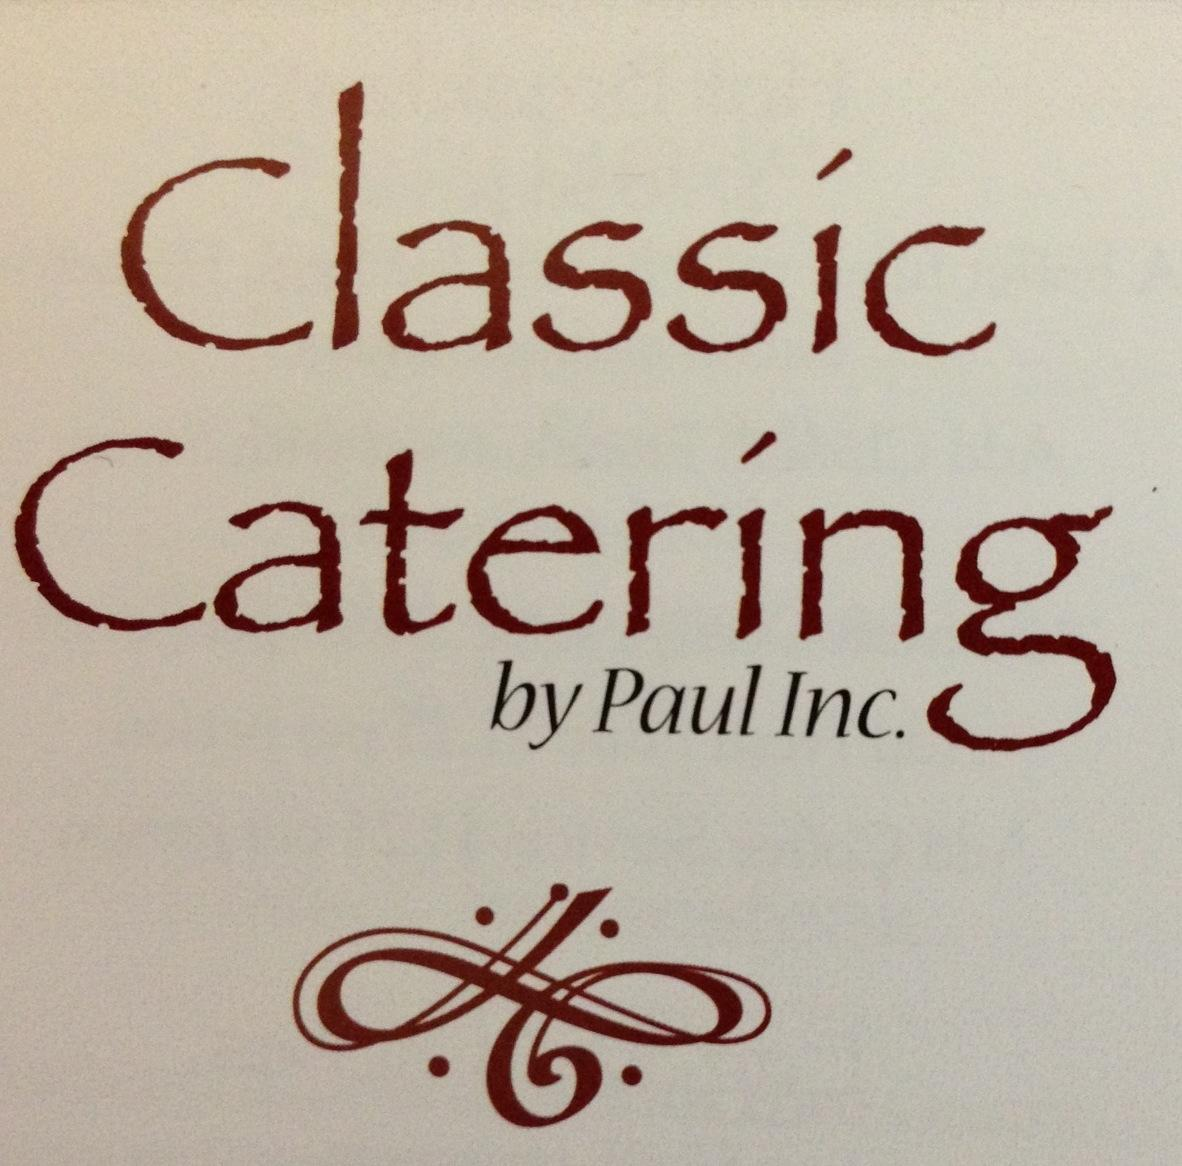 Classic Catering by Paul